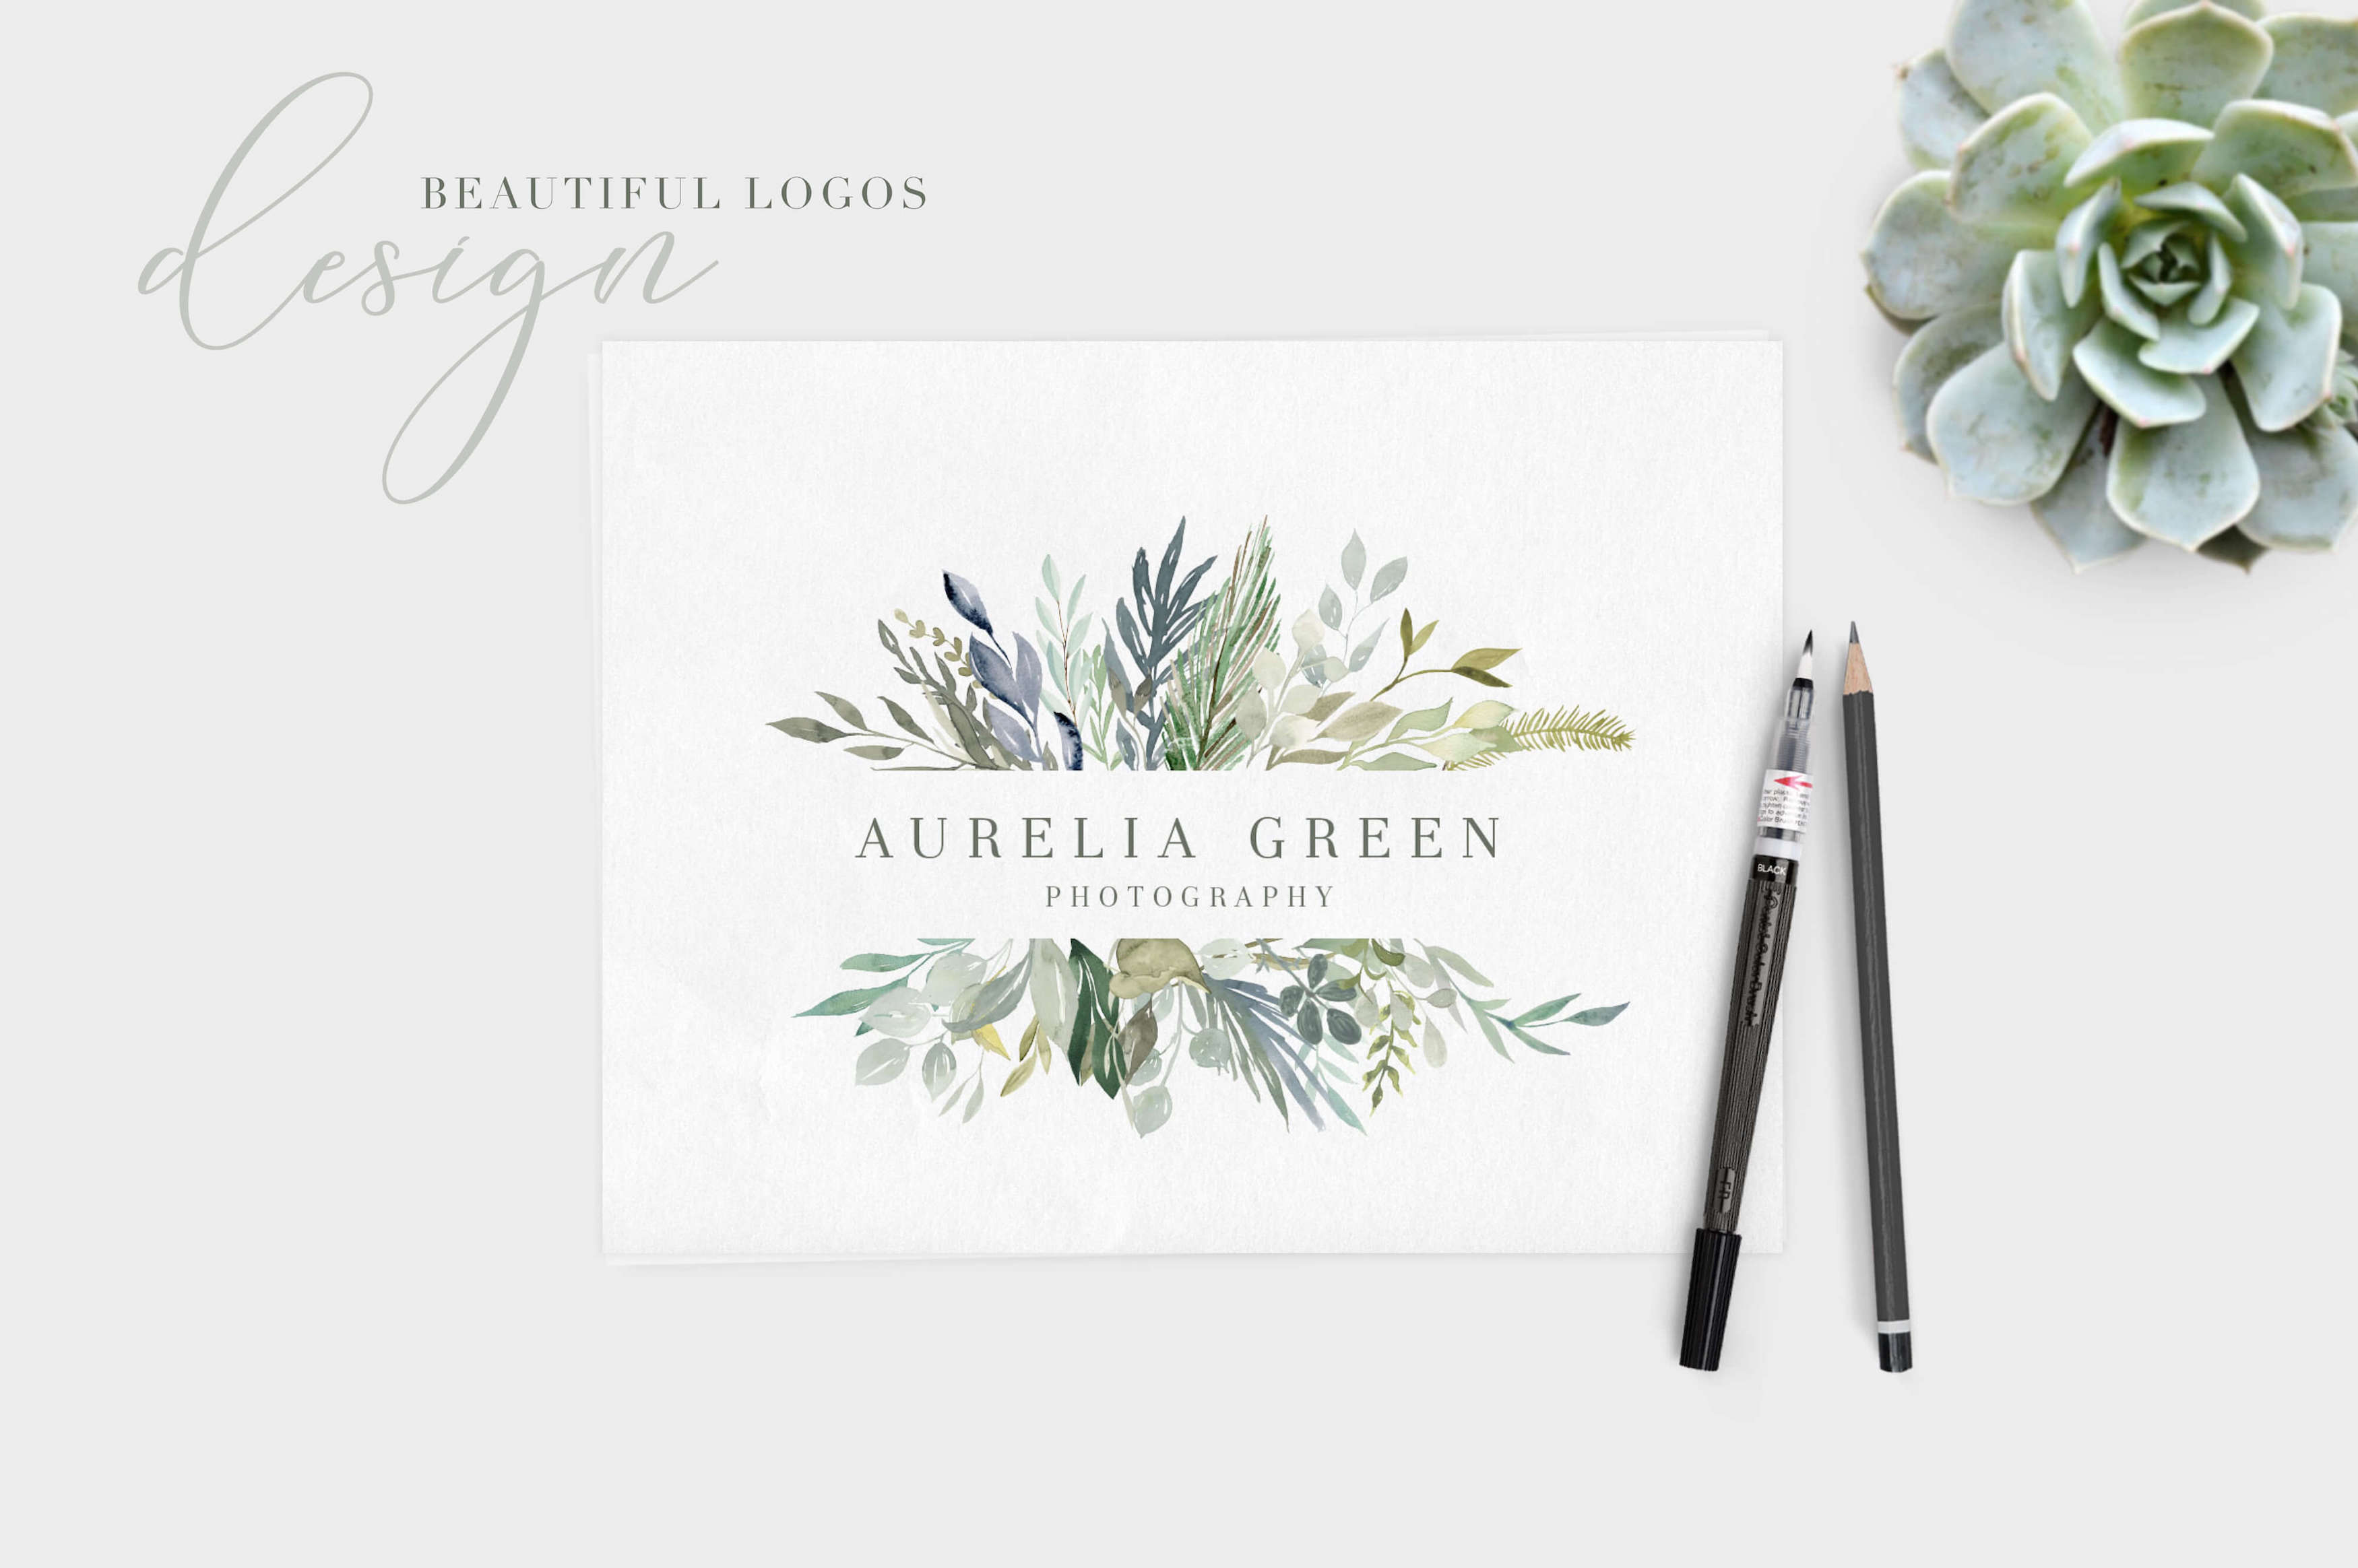 Foliage - Hand Painted Watercolor Leaves